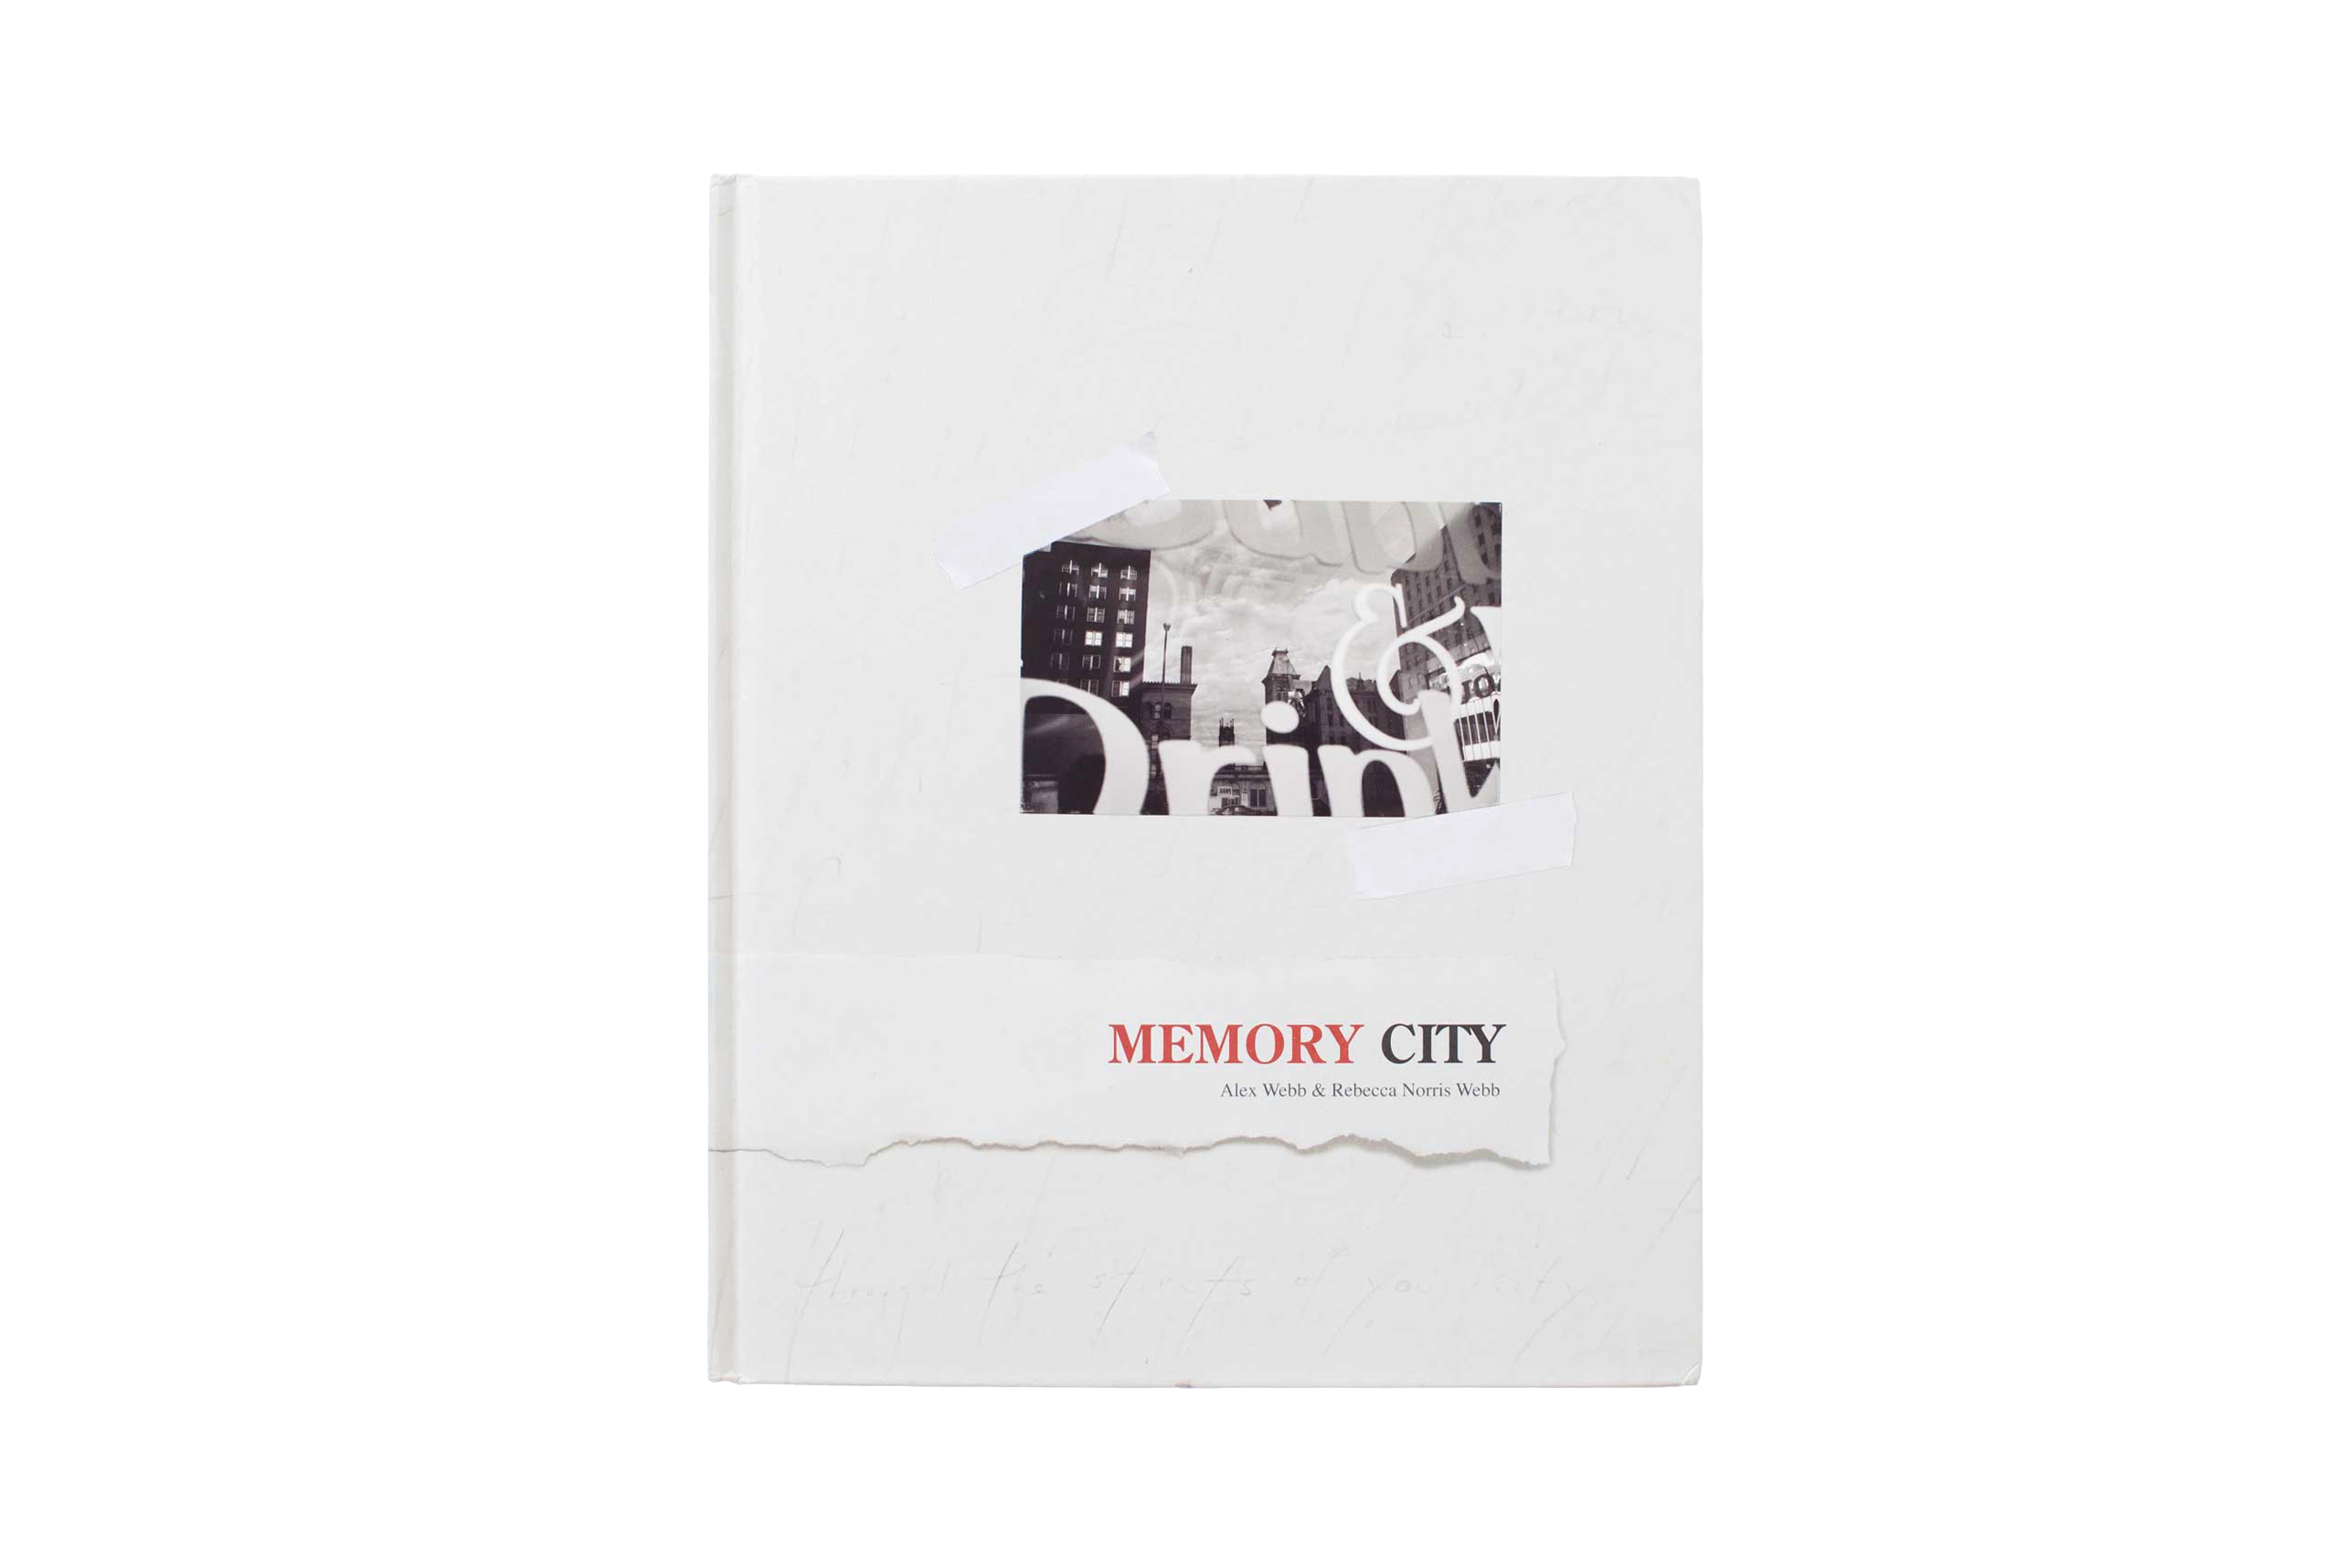 Memory City  Alex Webb and Rebecca Norris Webb's Memory City, published by Radius Books                                                              A collaboration between the two photographers  about the impact Kodak has had on the upstate New York City of Rochester. The book pays hommage to the company whose film was essential to the work of the husband and wife team..